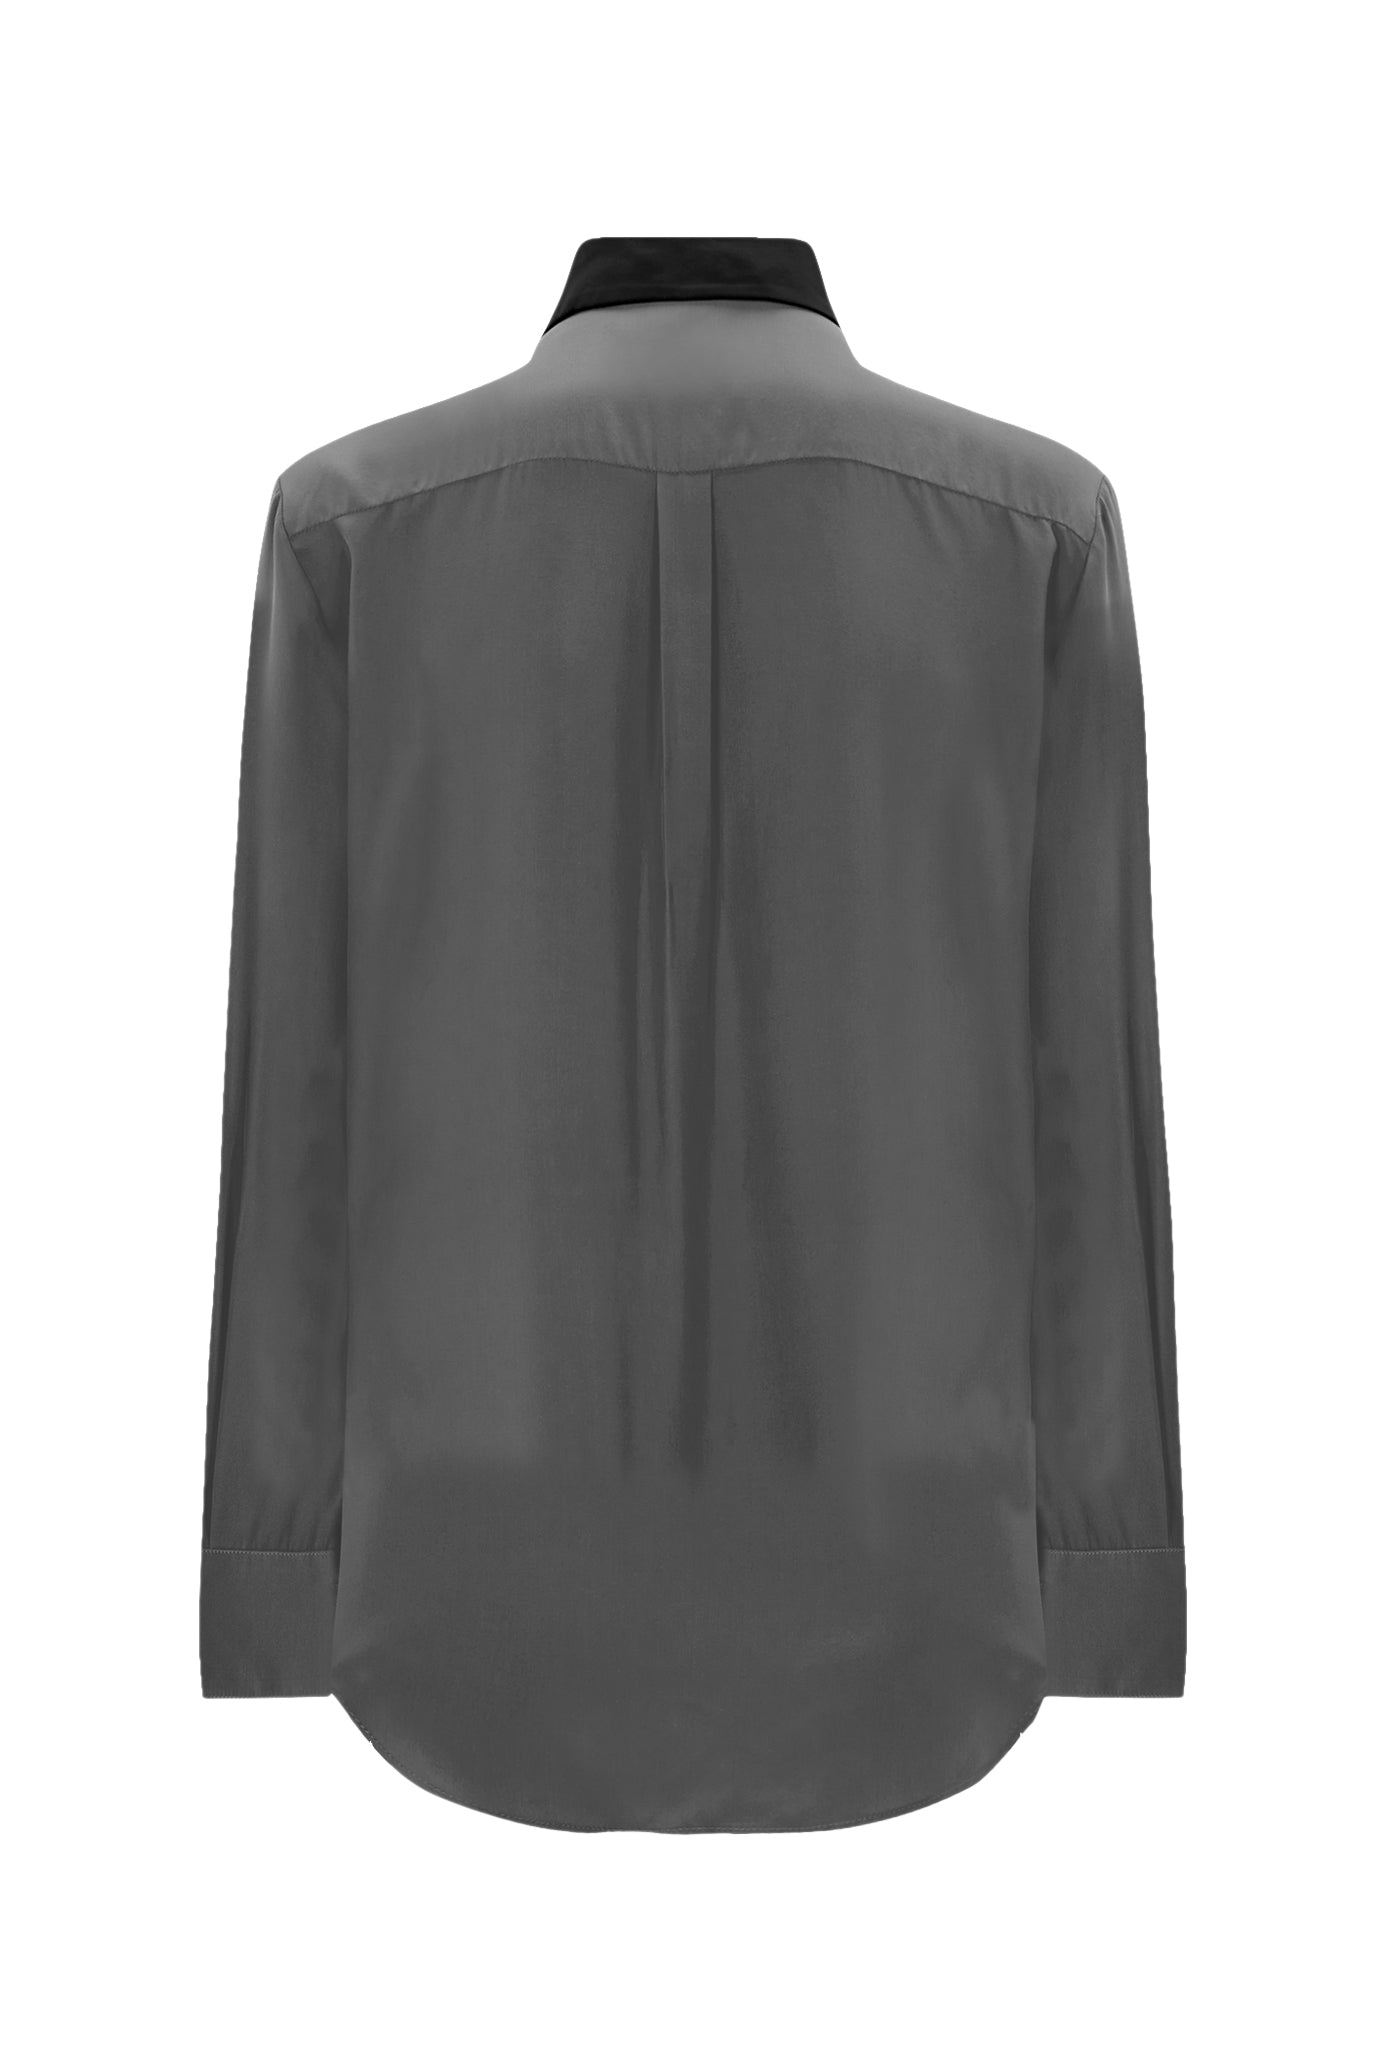 The Classic Shirt - Grey & Black Silk